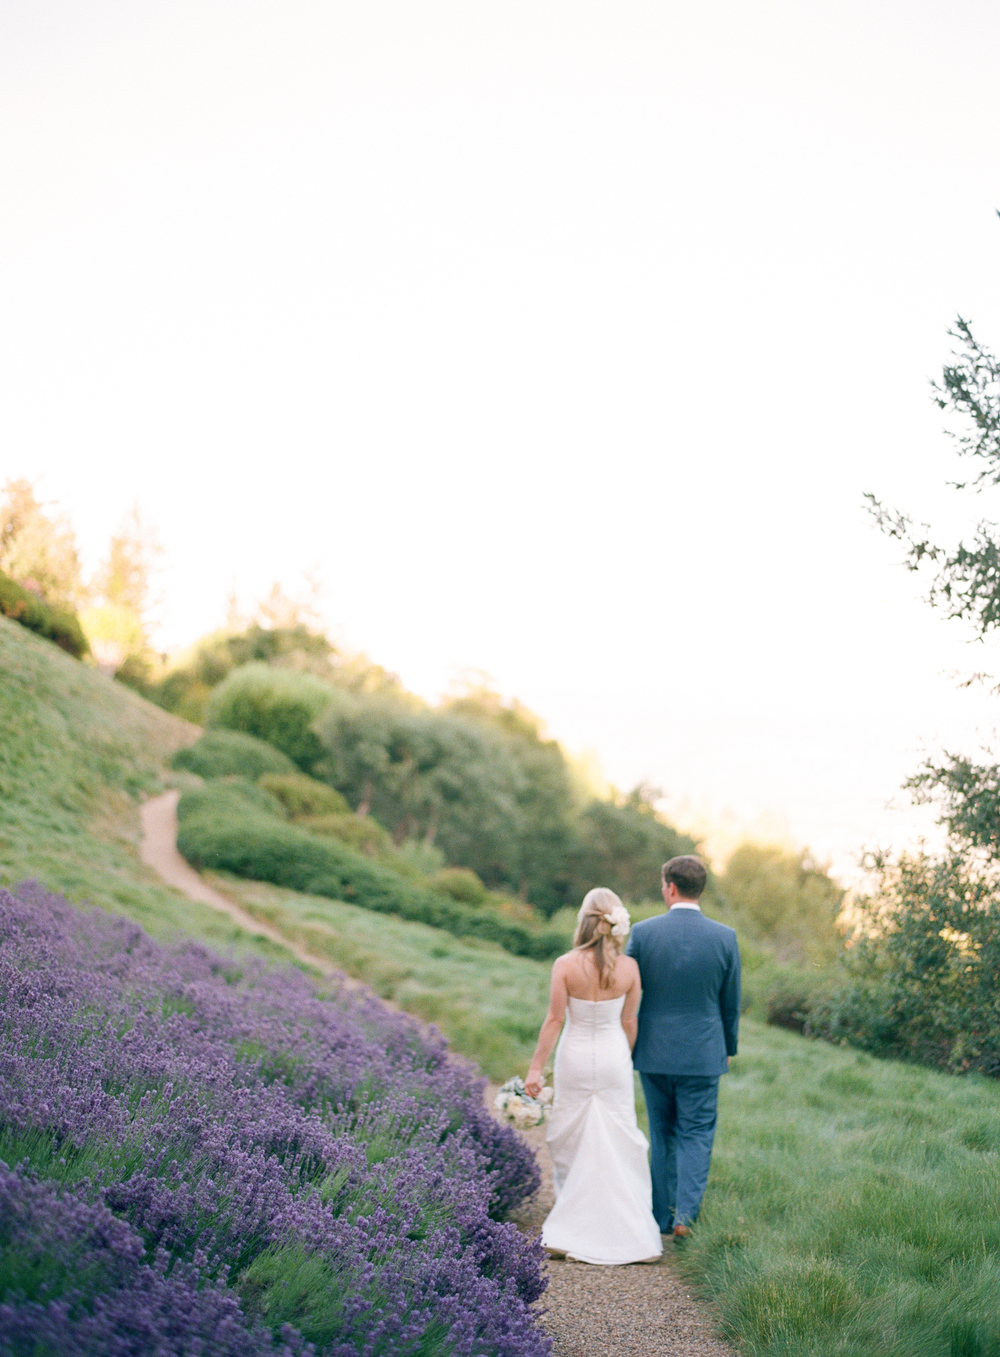 Newlyweds find a moment of calm after the ceremony, walking hand in hand for a couple portrait by a lavender field; photo by Sylvie GIl